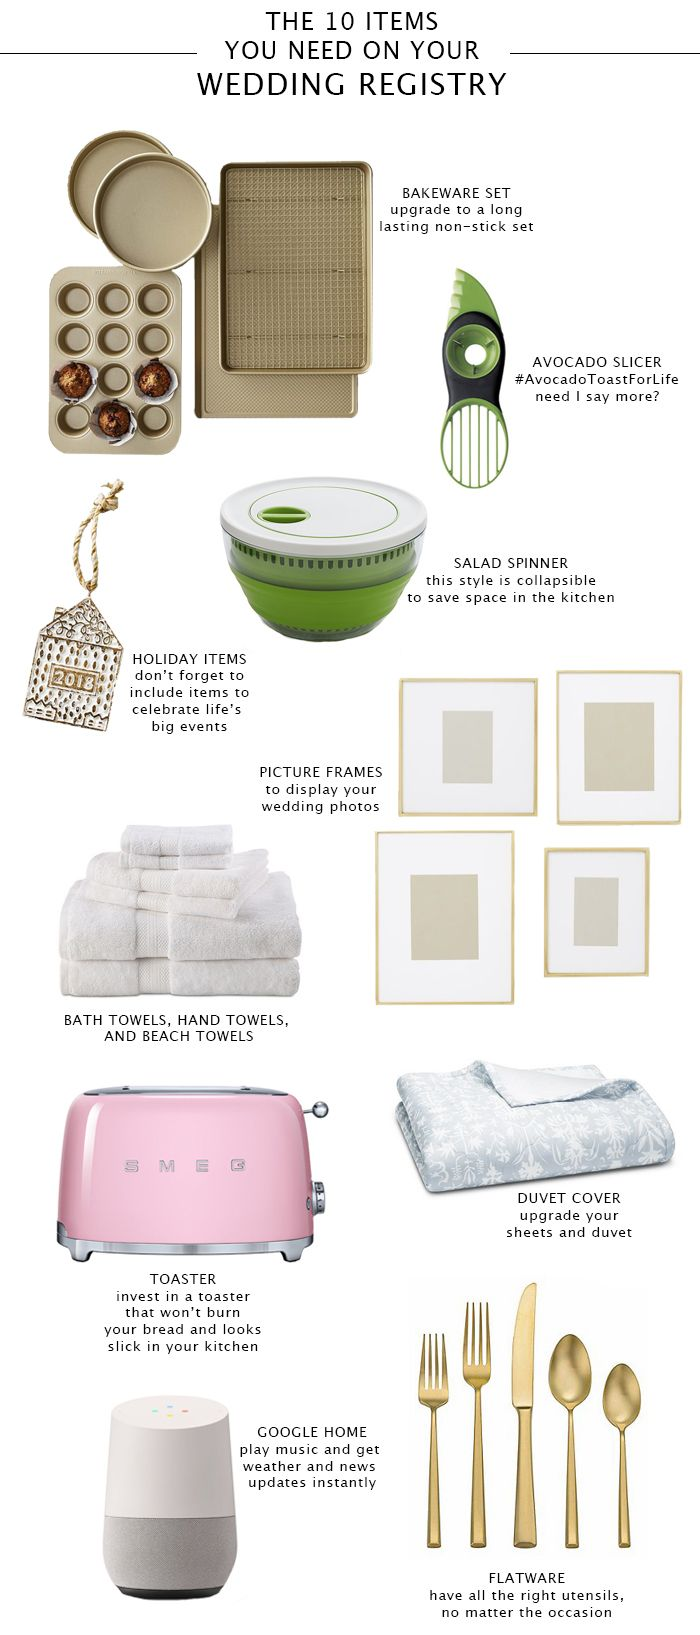 Planning Your Wedding Registry Should Be Fun And Stress Free So Today We Re Sharing The Top 10 Items Everyone Register For